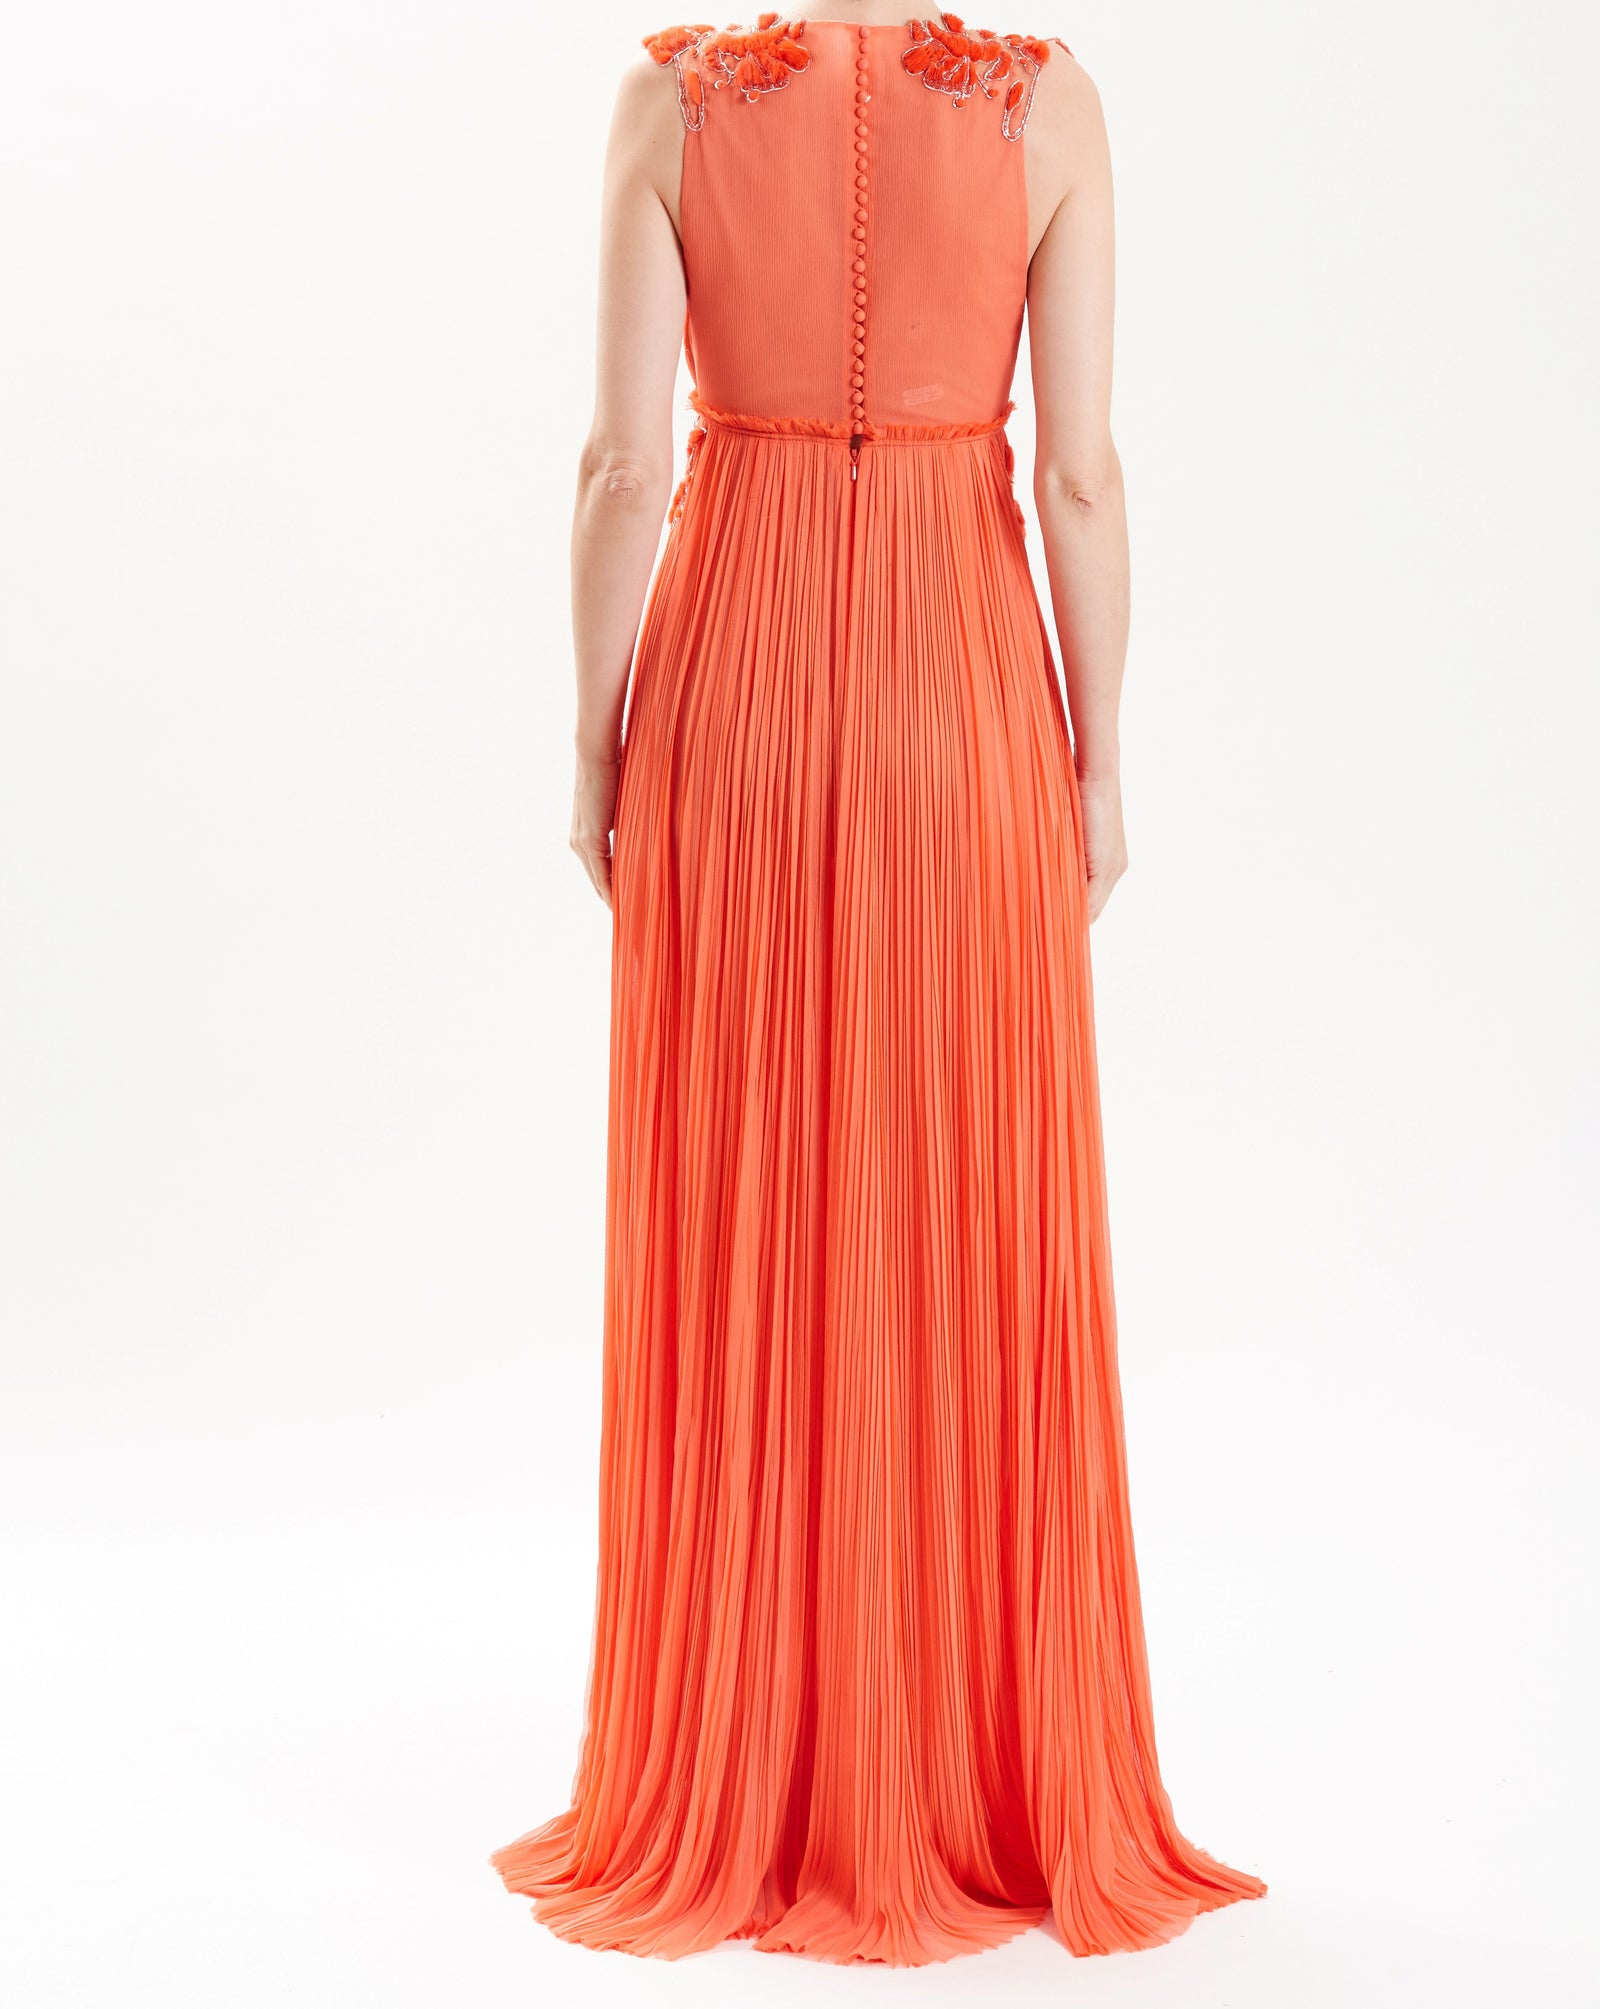 Coral Silk Chiffon Hand-Pleated Gown With Embroidery